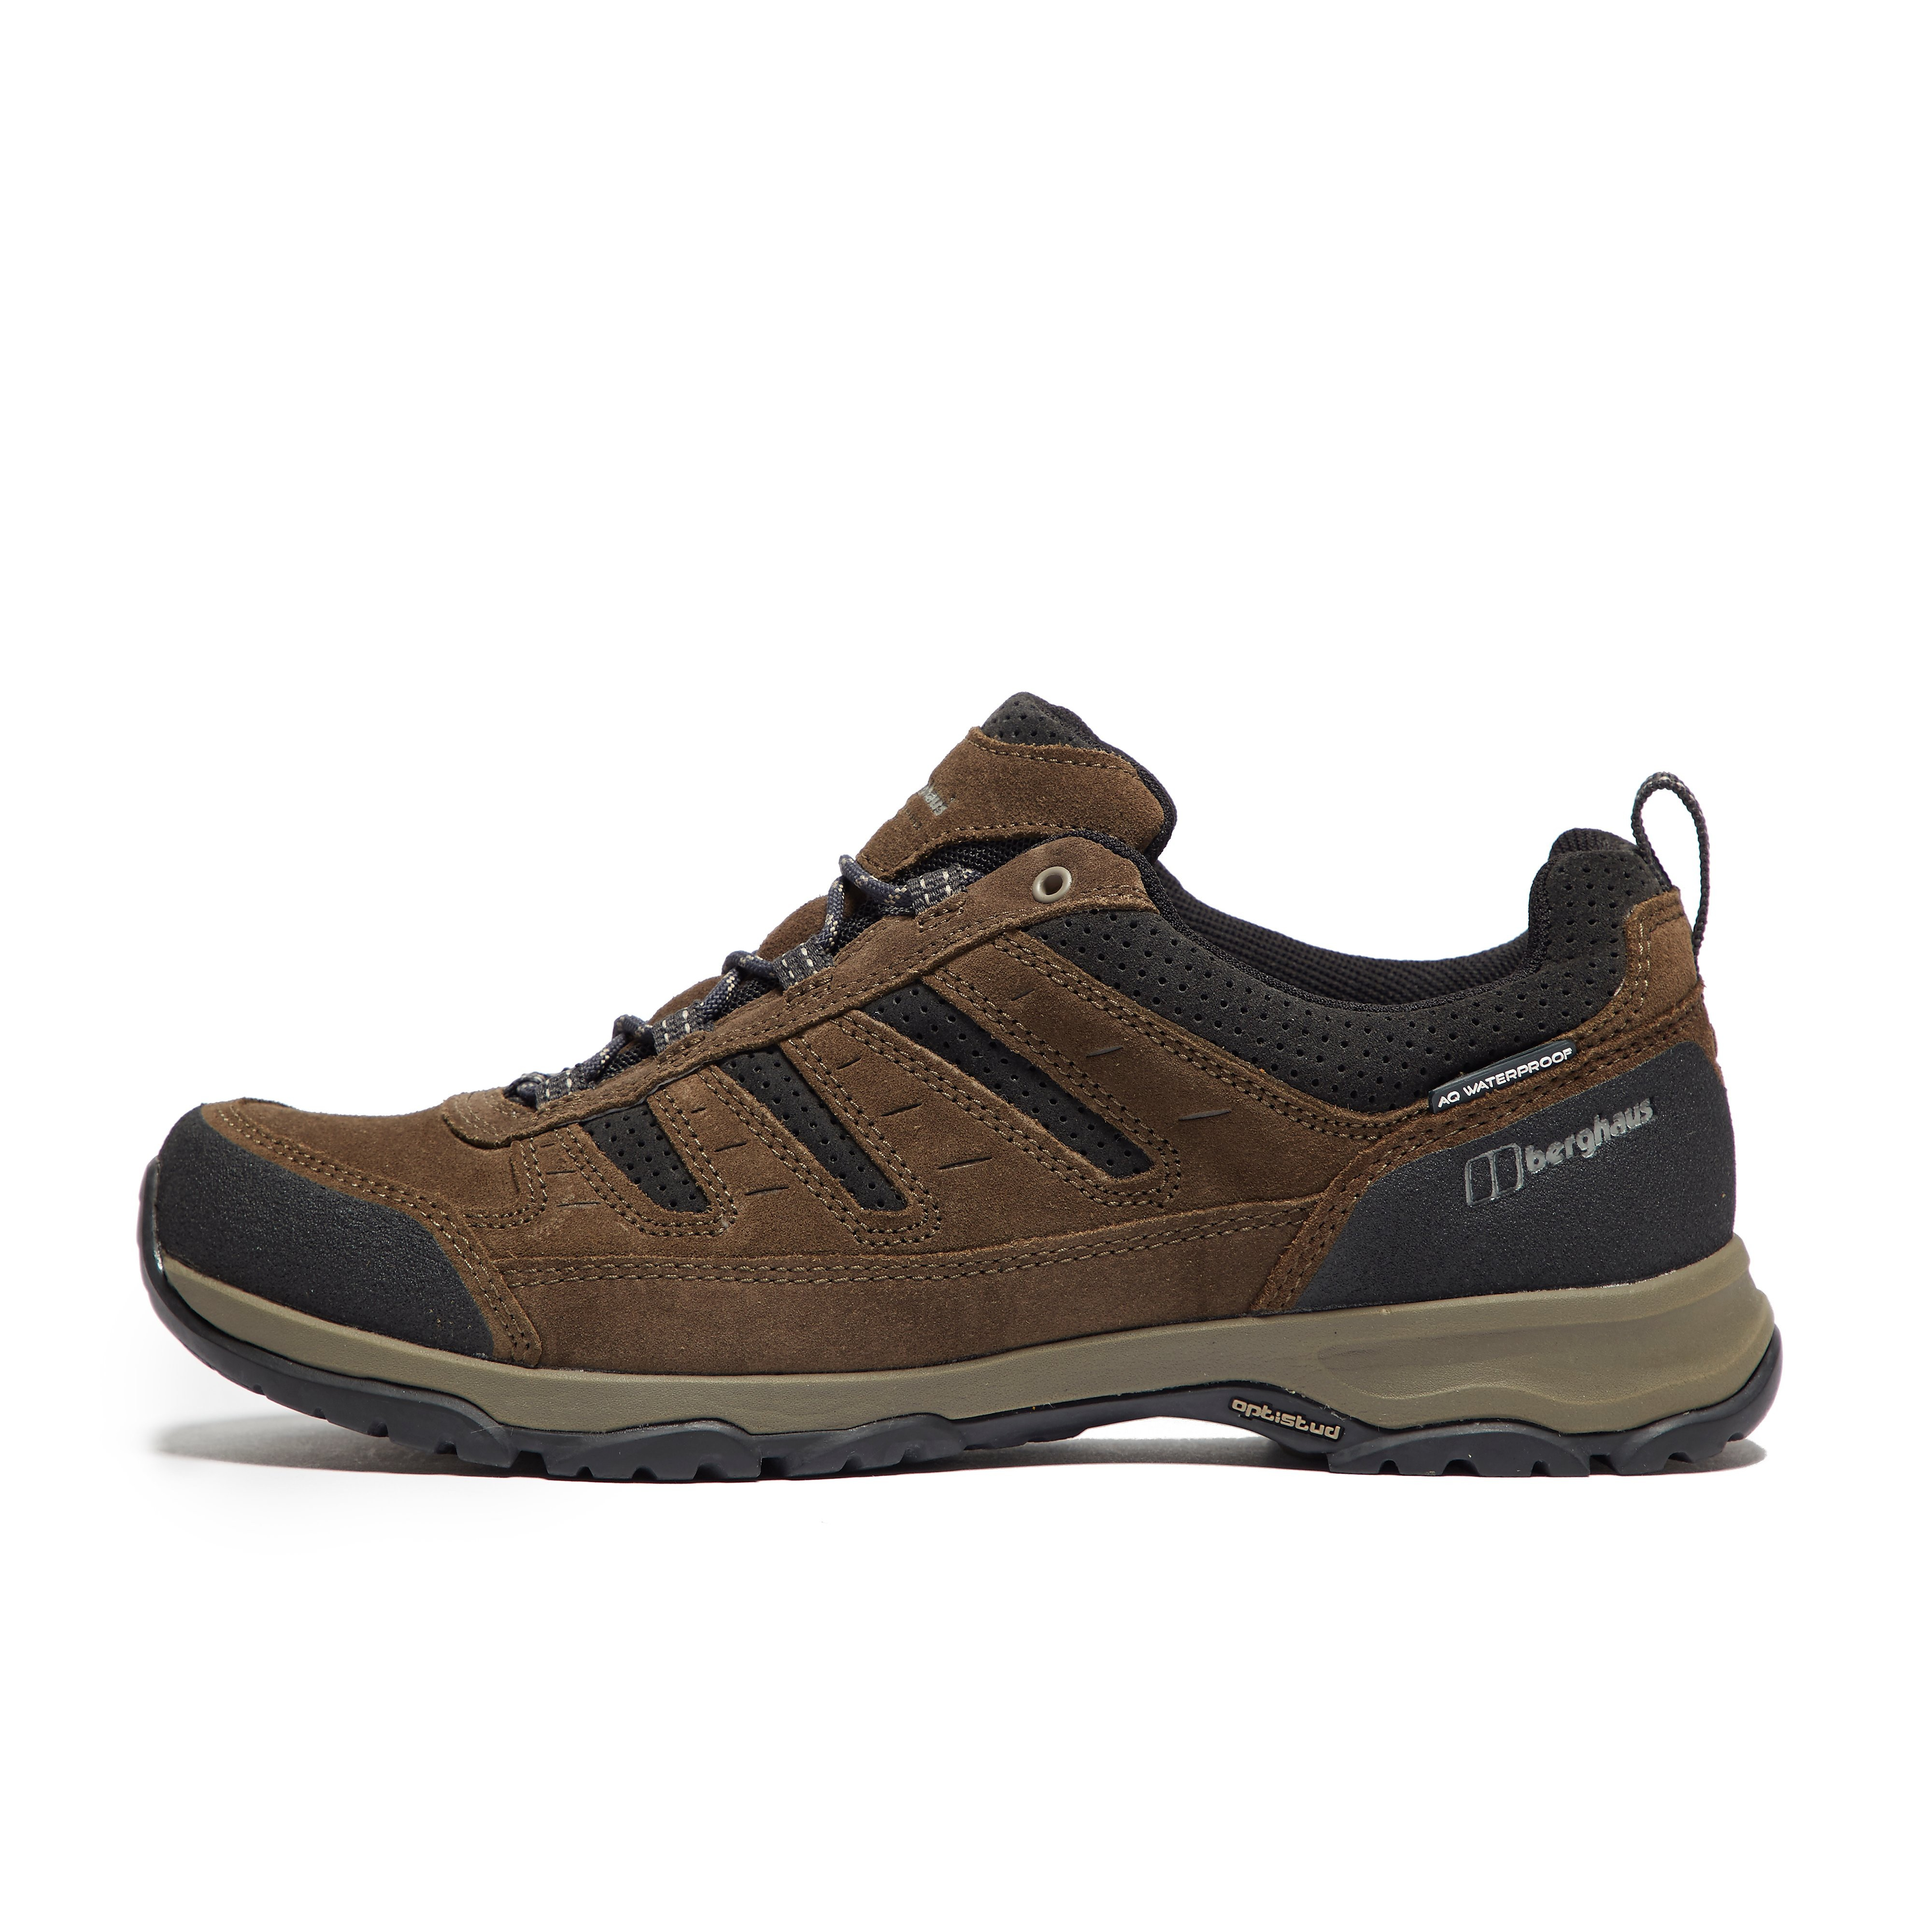 Berghaus Expeditor Active AQ Men's Walking Shoes